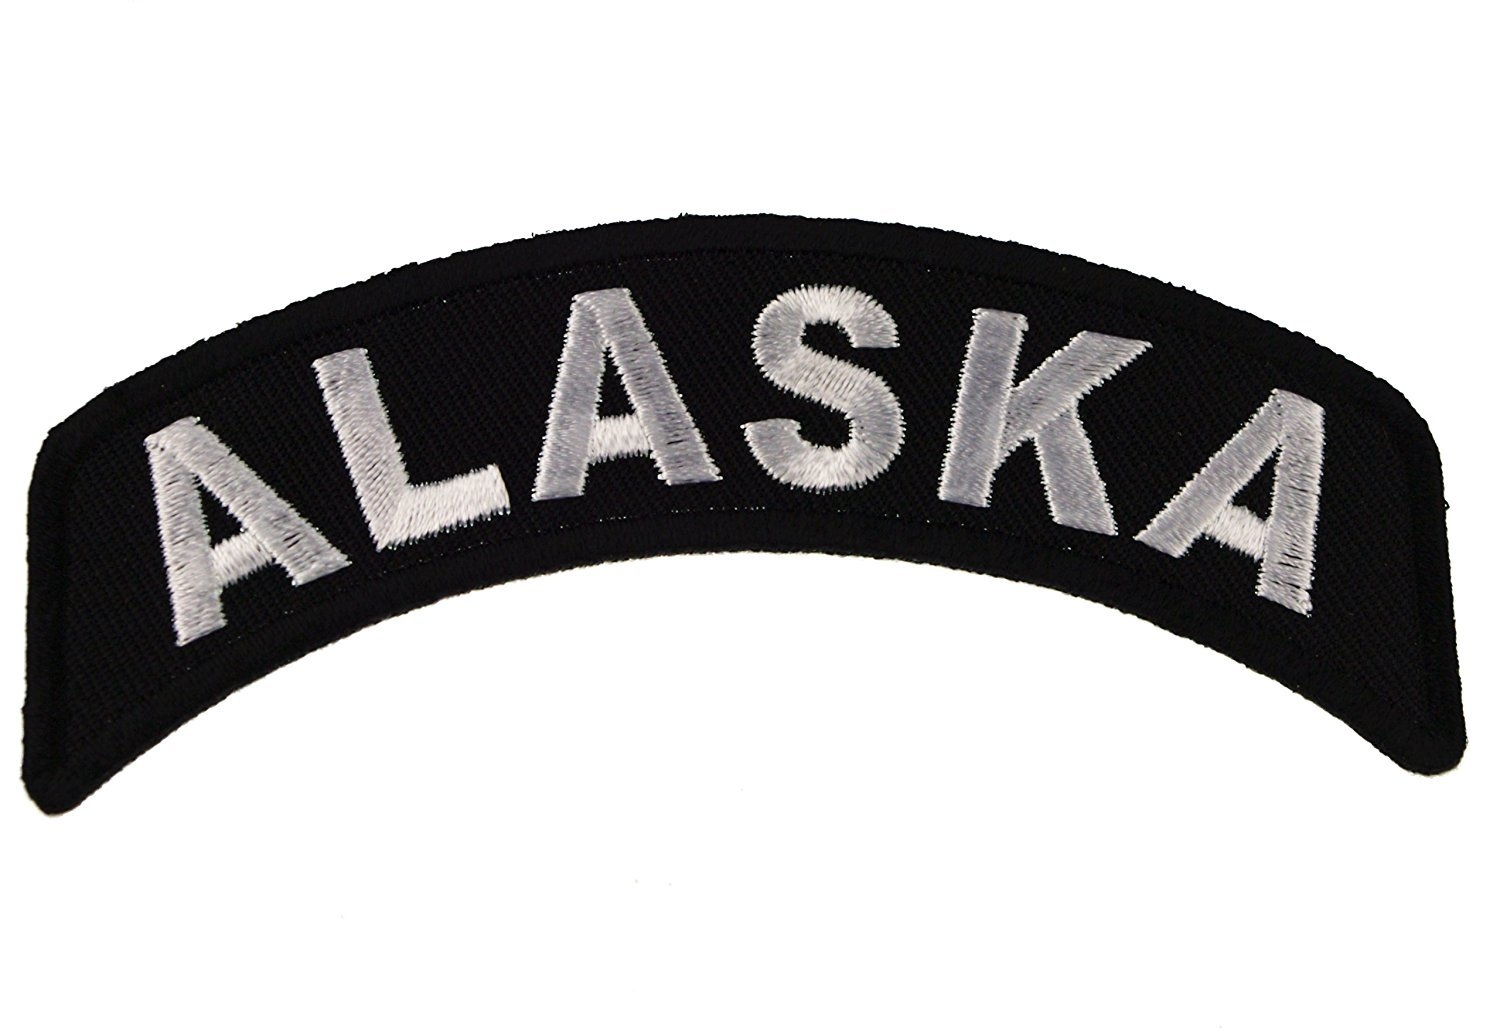 Alaska State Rocker Iron or Sew on Embroidered Shoulder Patch D37 by Sujak Military Items   B00B8AUZJ2